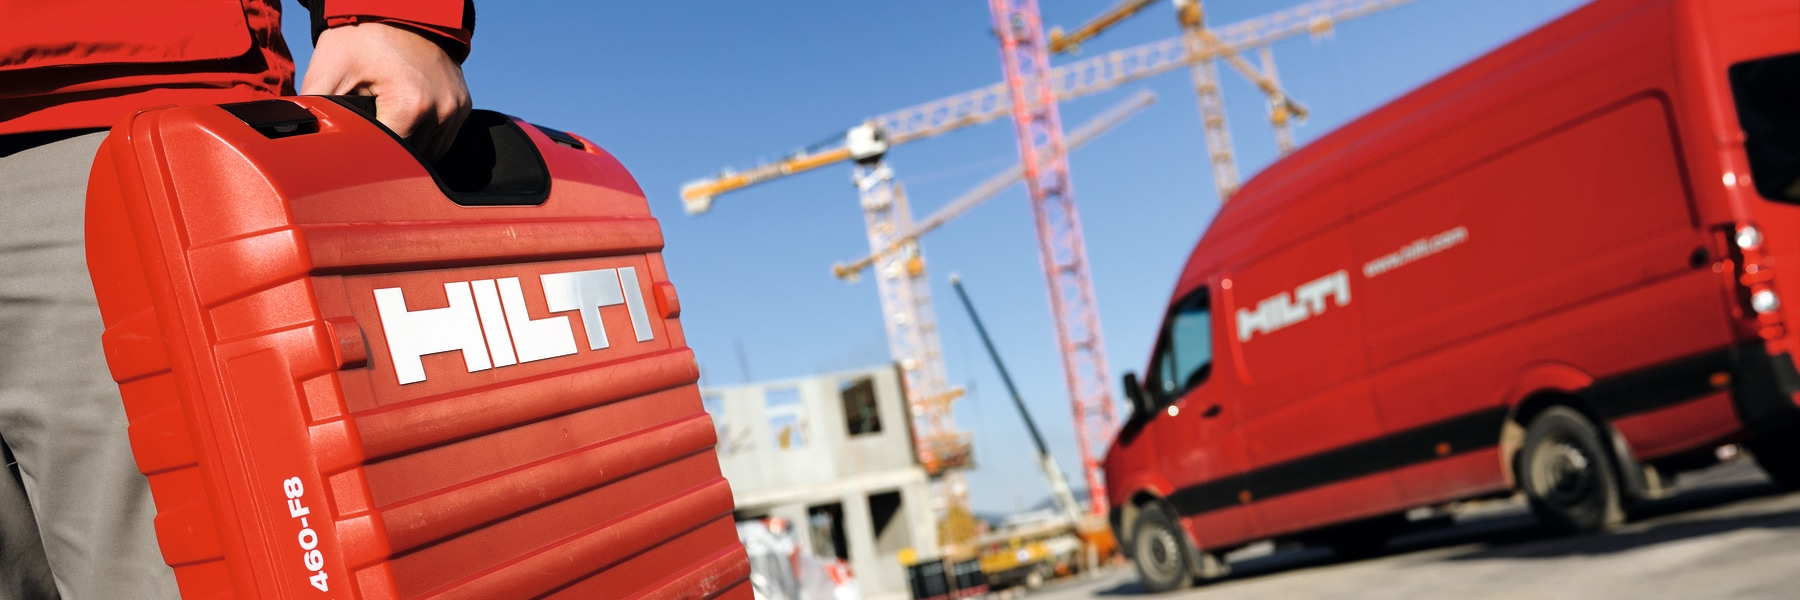 Fleet Management Software >> Media Releases - Hilti Corporation